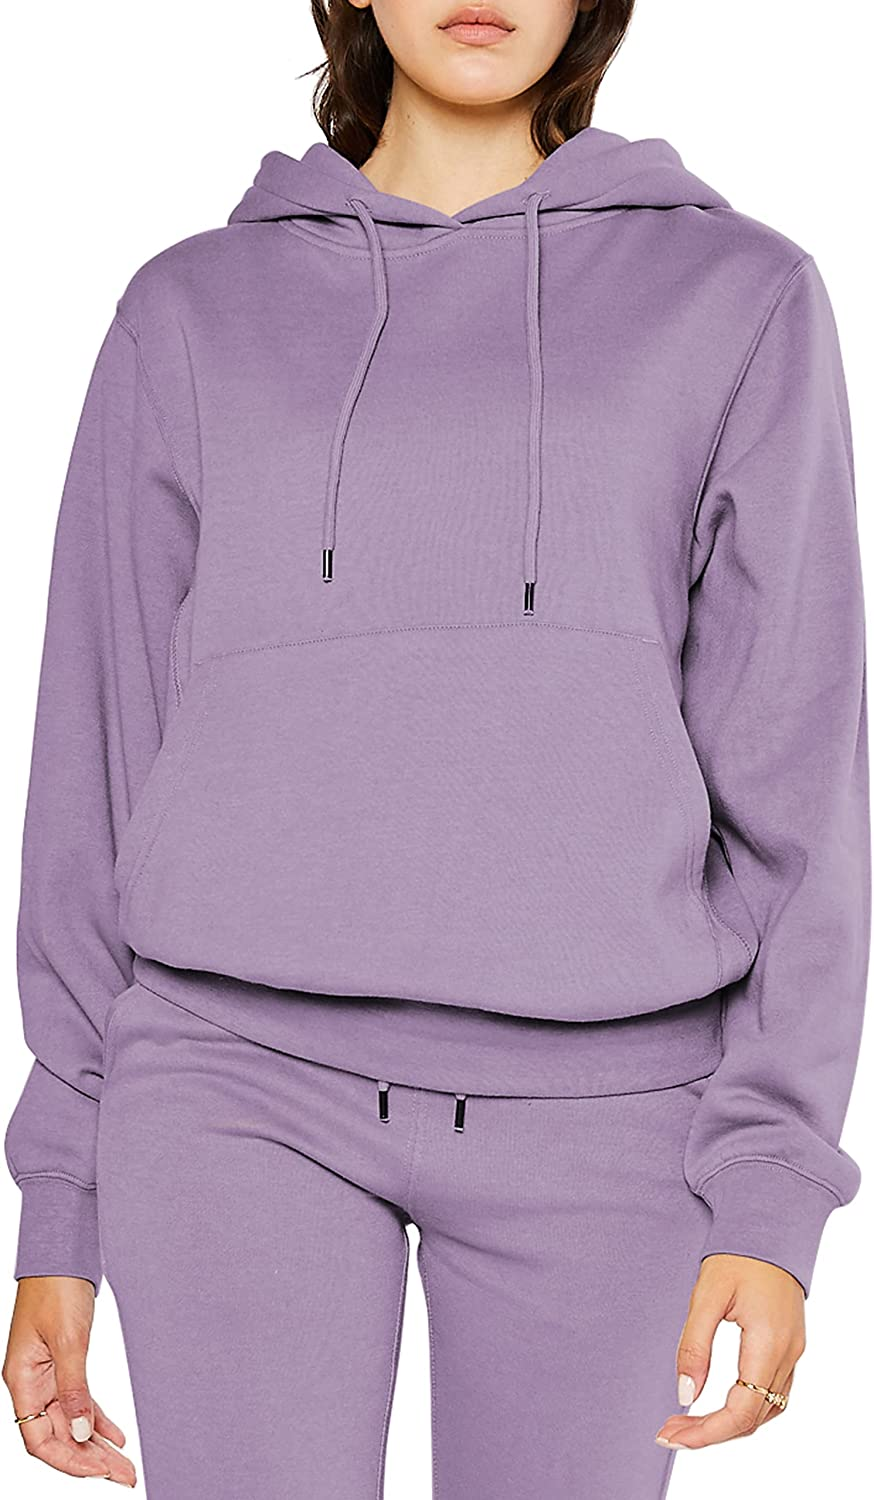 PAC Women's Comfortable Soft Fleece Boyfriend Fit Casual Lightweight Active Basic Pullover Hoodie With Kangaroo Pocket